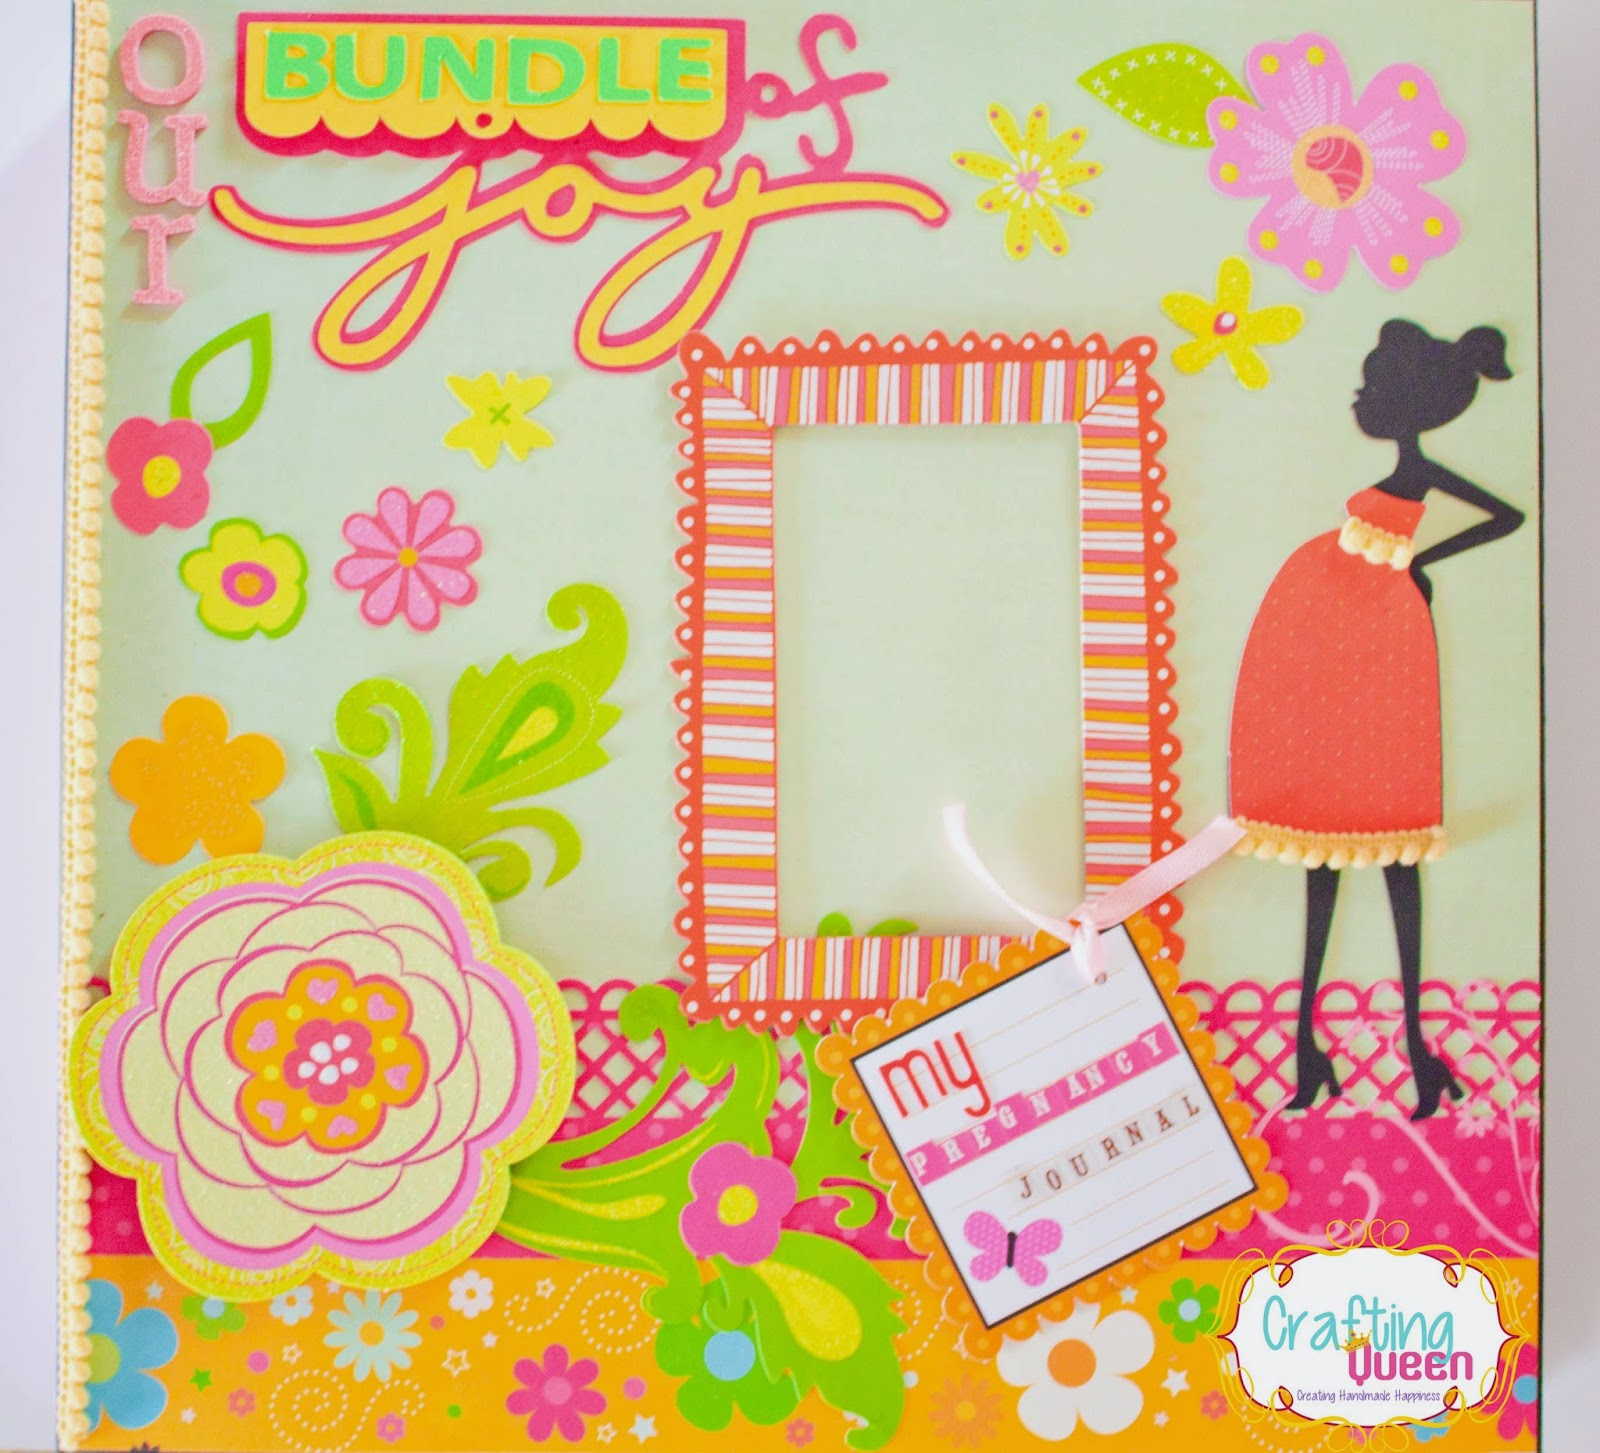 Scrapbook journaling ideas free -  14 Page Scrapbook And I Also Have A Video At The End Of This Post For You To See All The Interactive Elements So Here Are The Pics In The Page Order